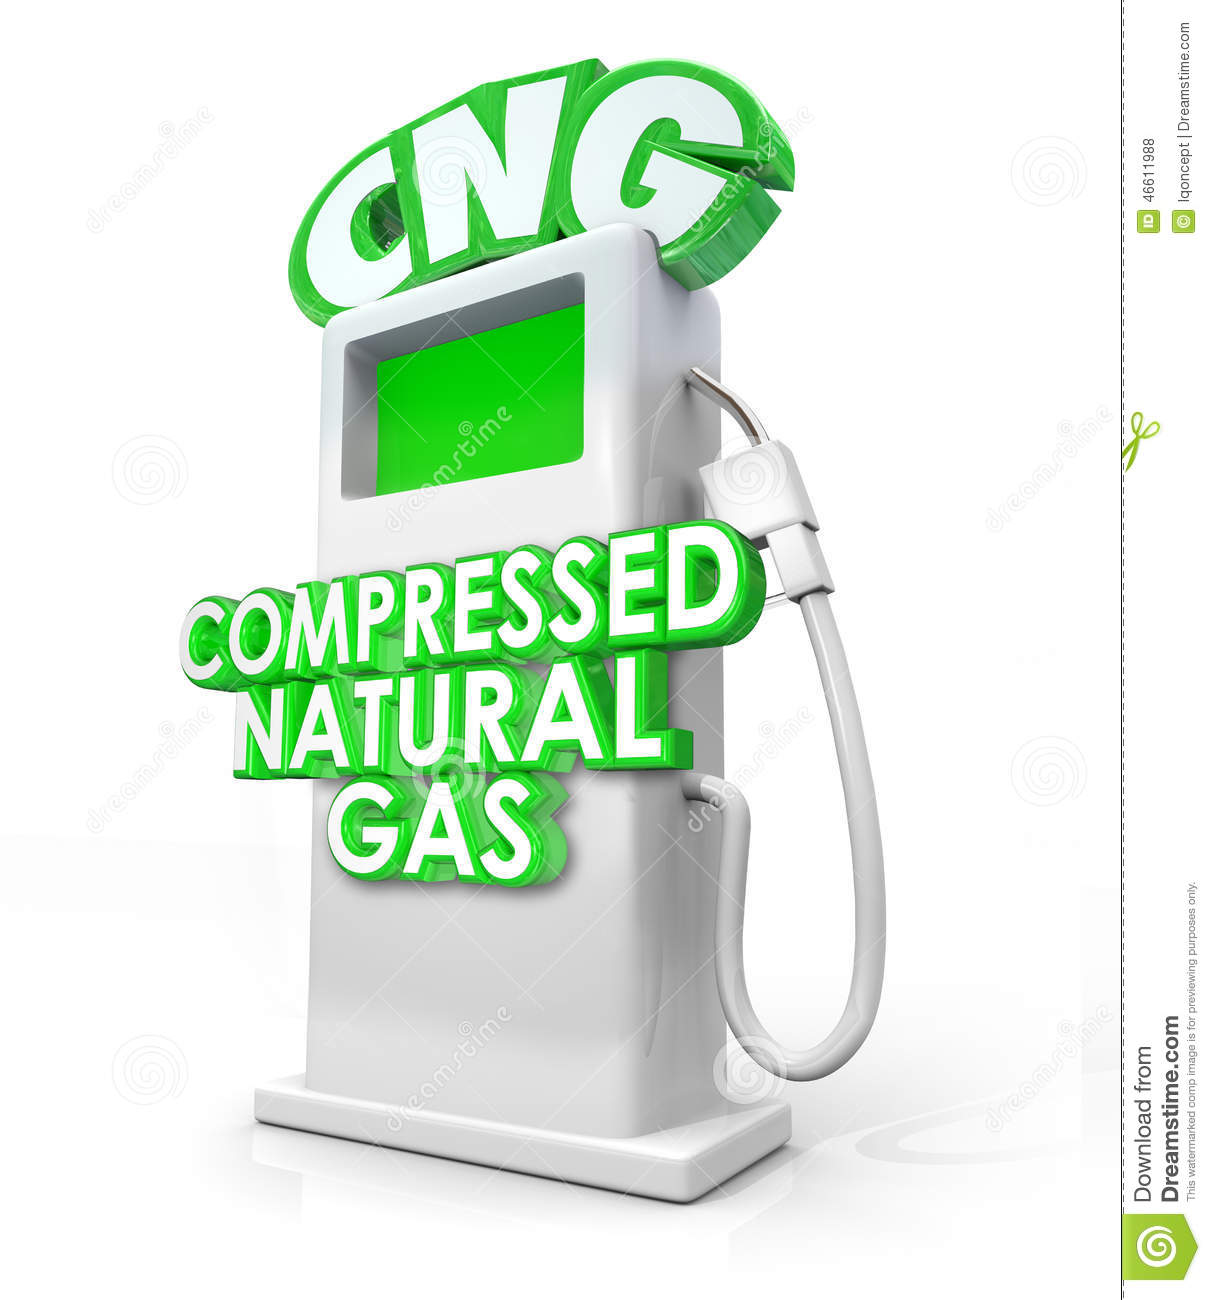 Cng auto clipart.